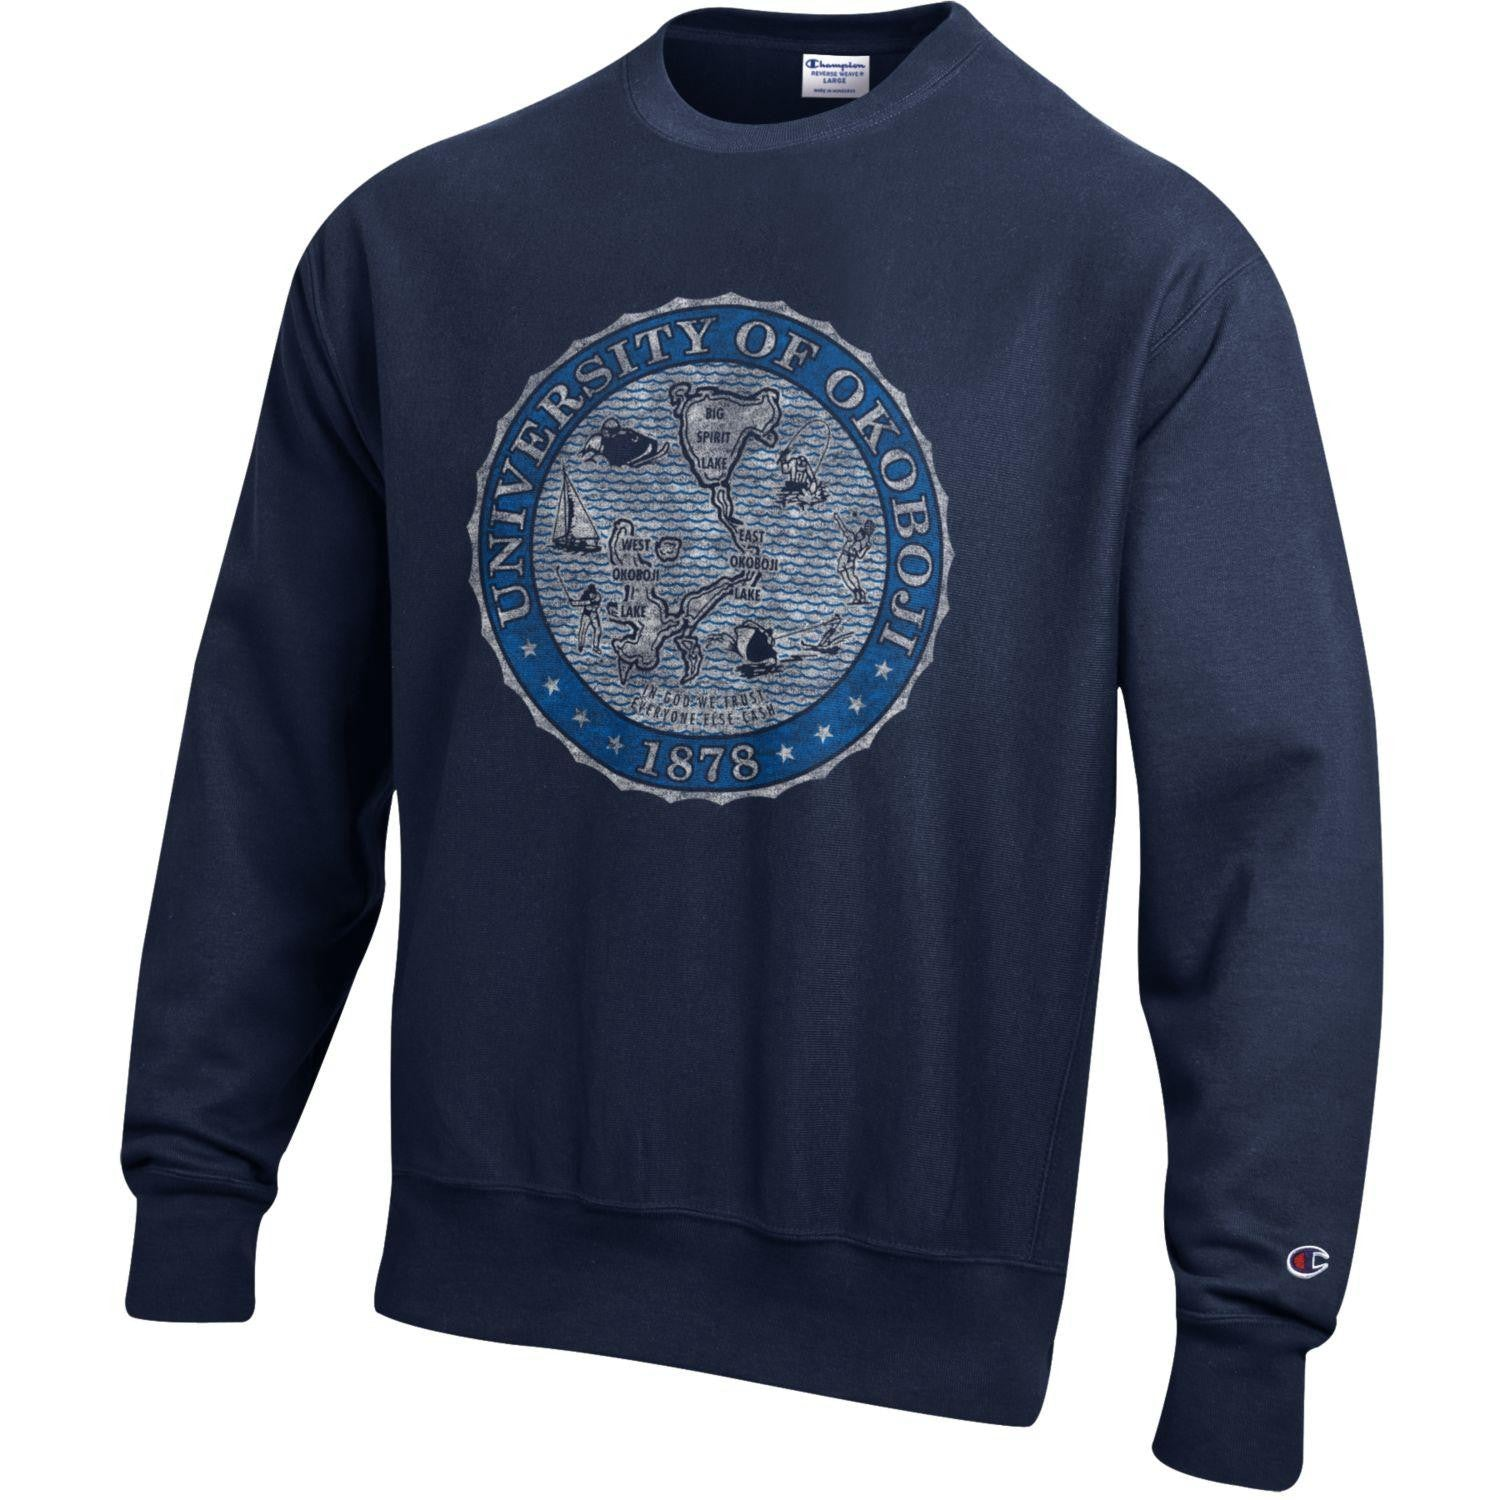 The Navy Champion Reverse Weave Crest Crew